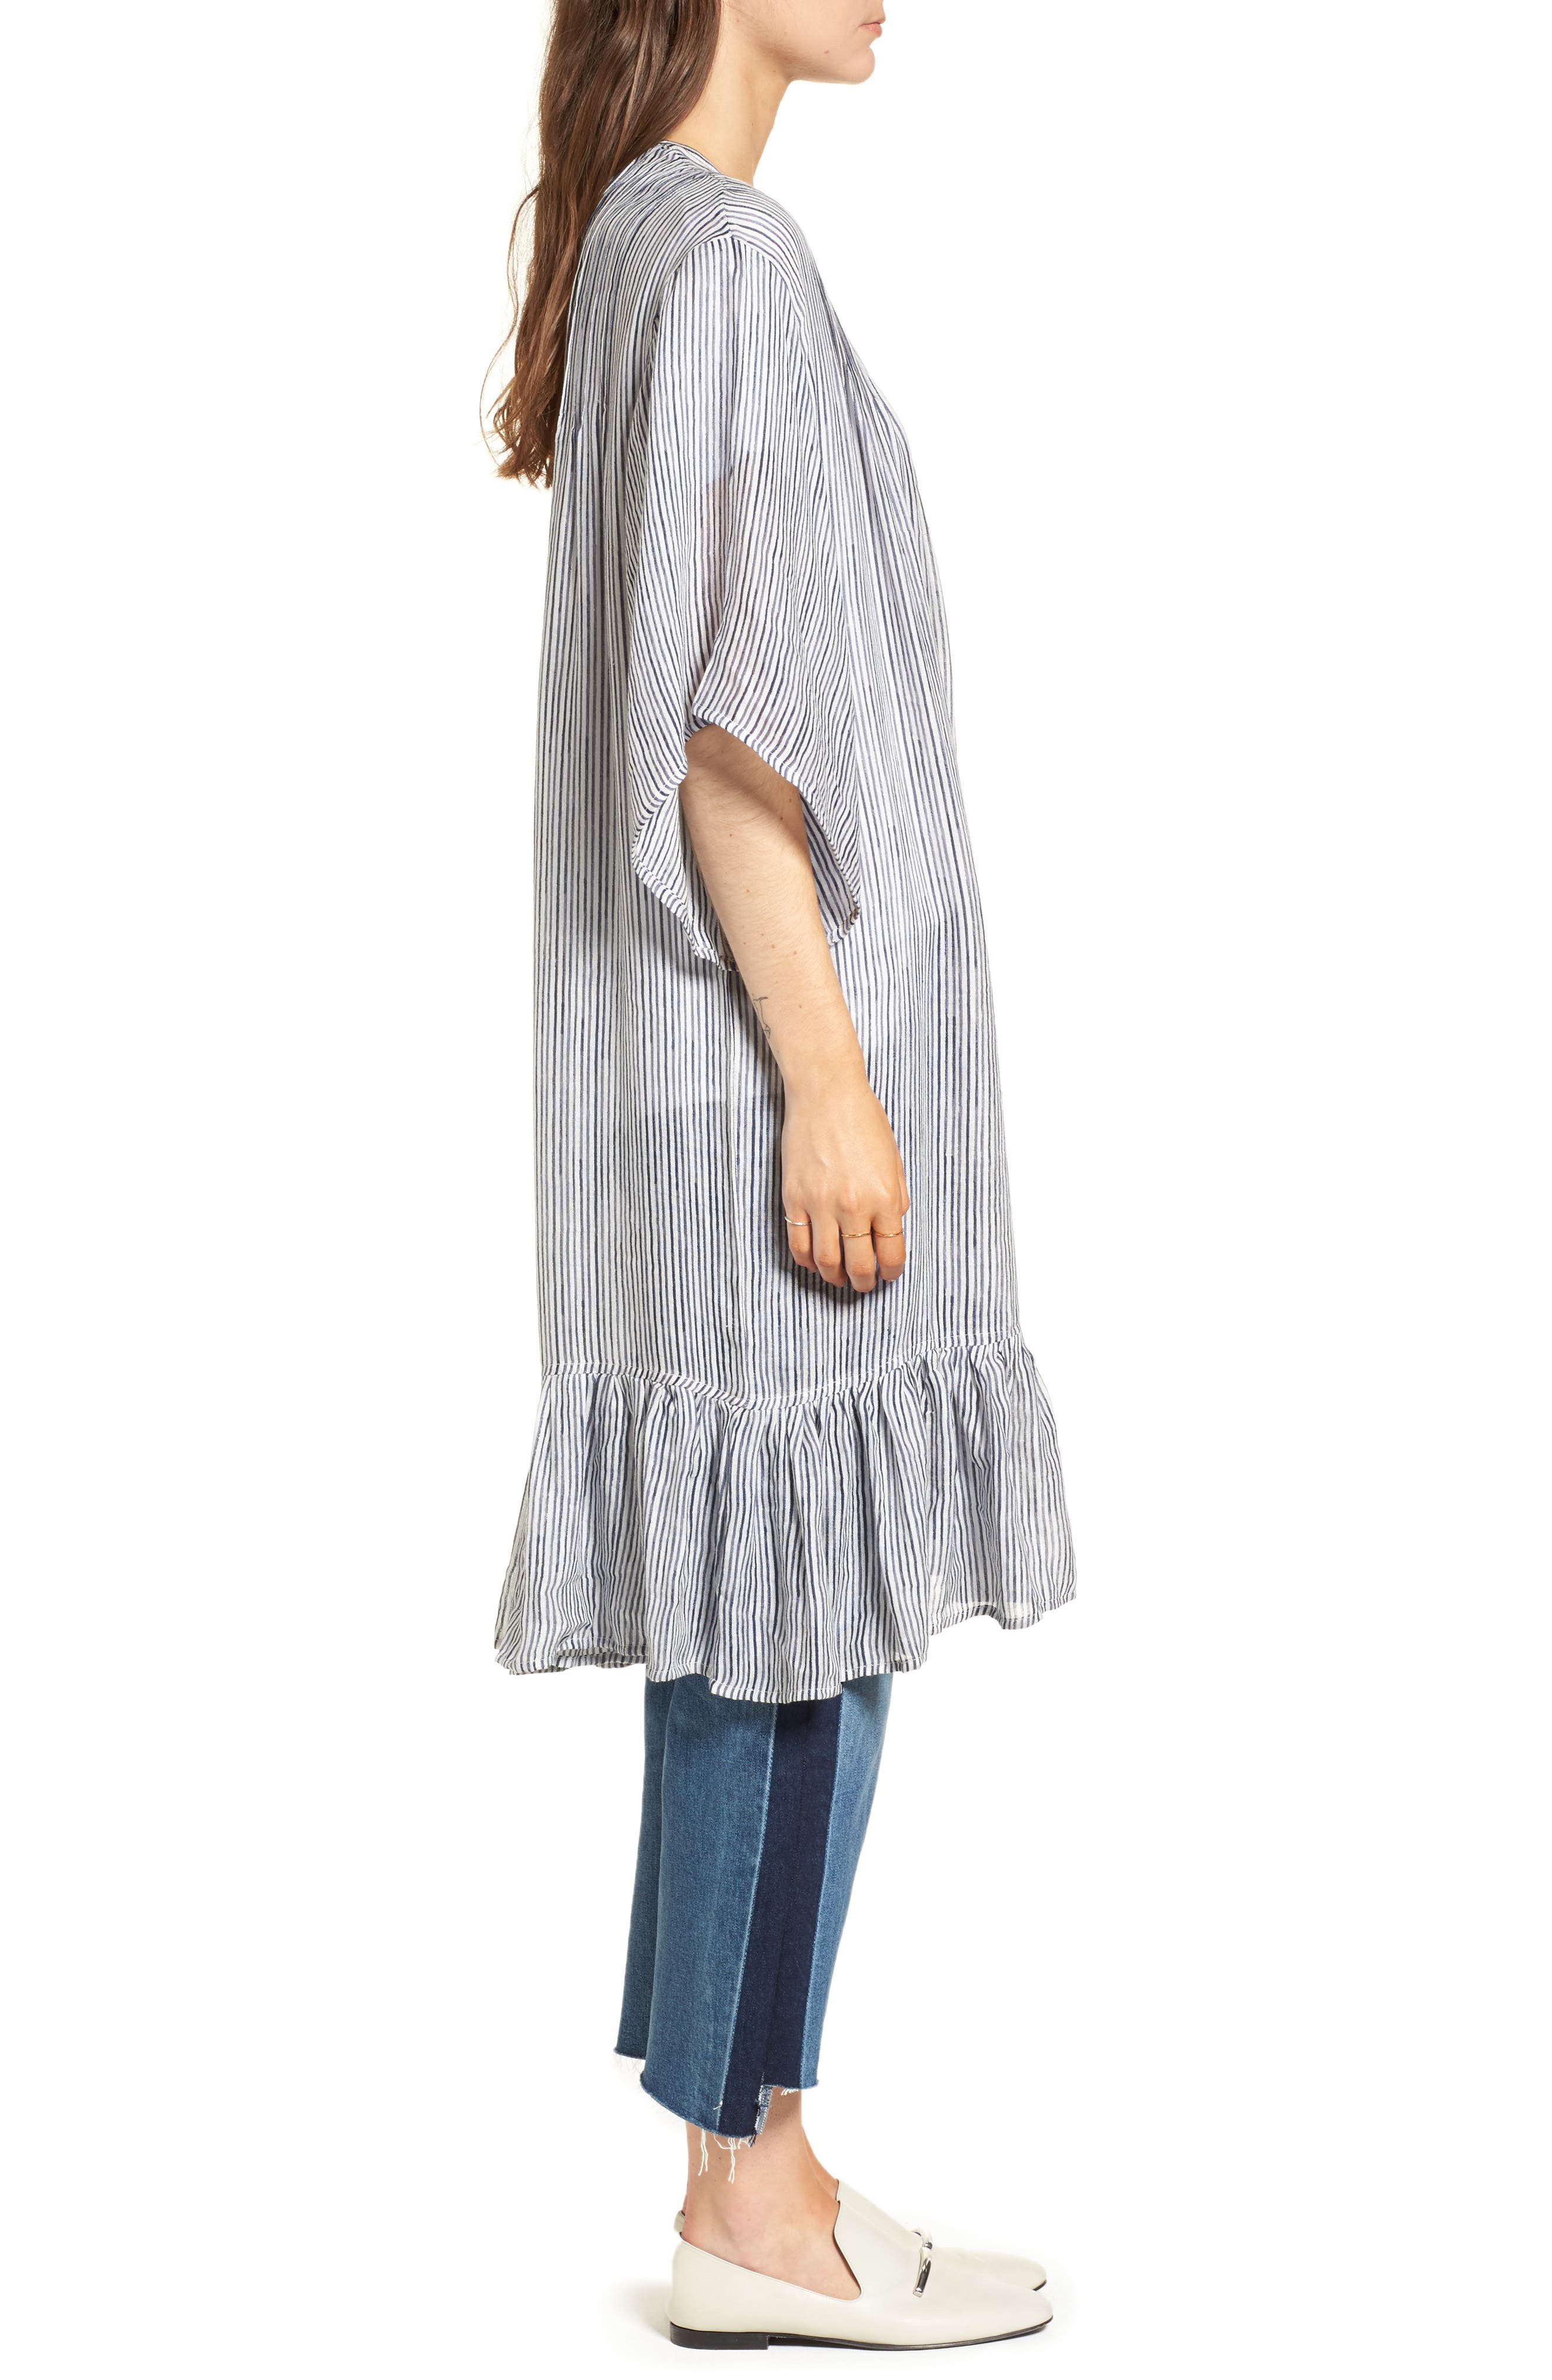 Ruffle Topper,                             Alternate thumbnail 5, color,                             Blue Washed Pinstripe